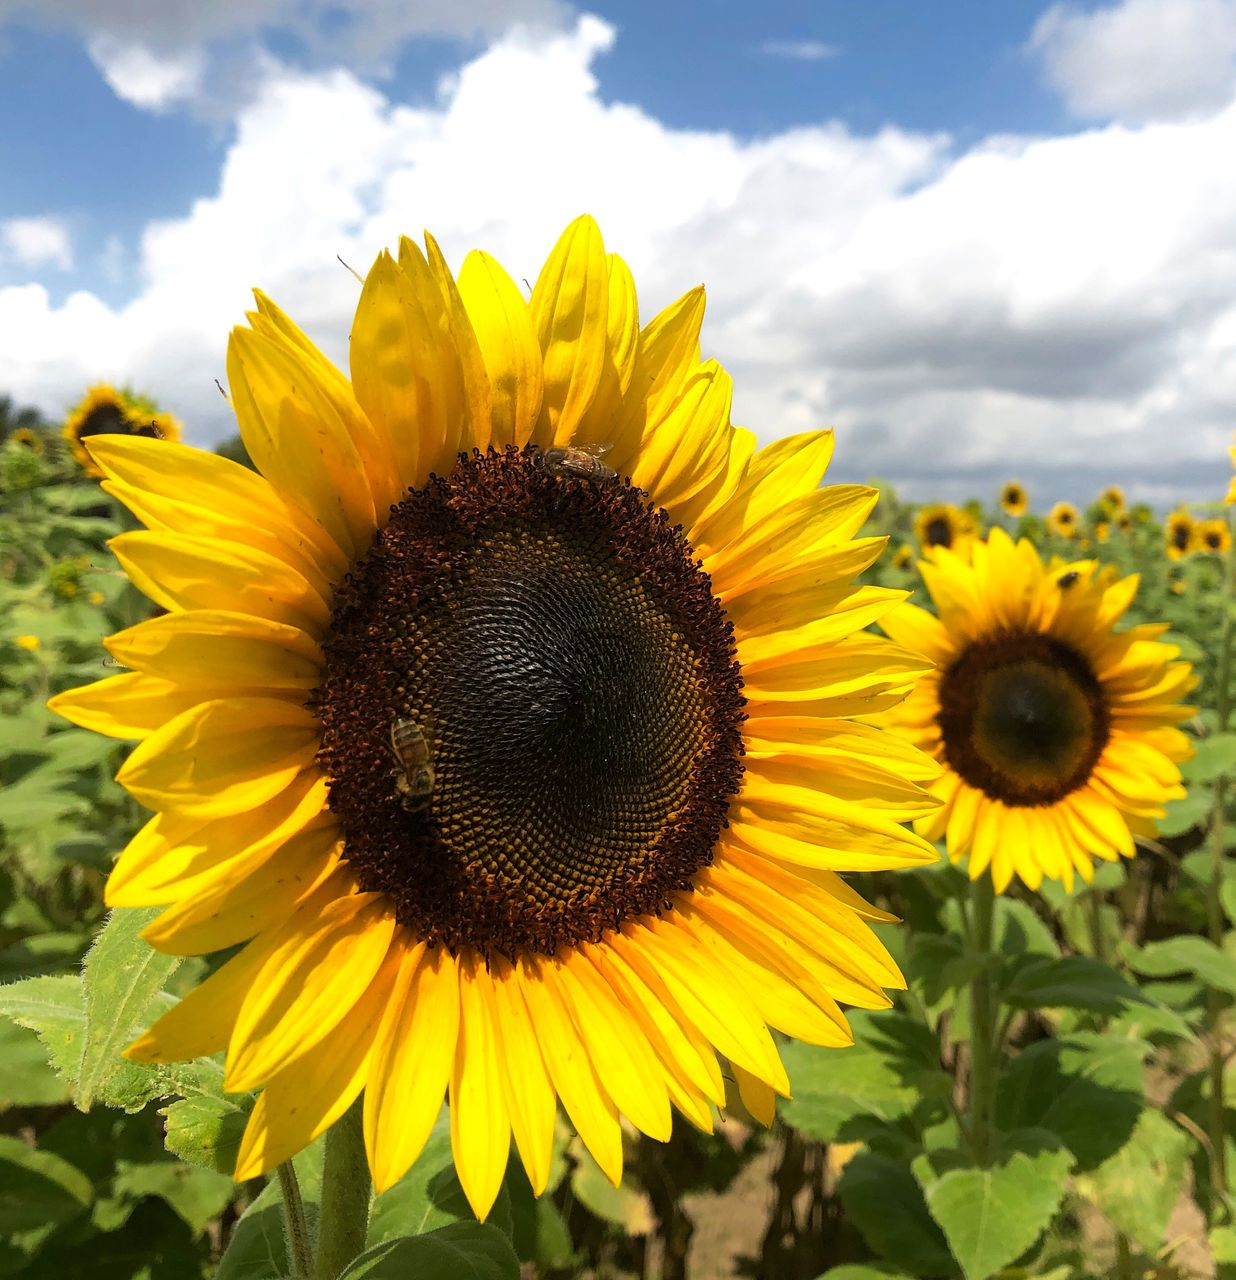 flower, flowering plant, yellow, flower head, petal, plant, sunflower, beauty in nature, inflorescence, fragility, freshness, growth, vulnerability, pollen, nature, close-up, sky, cloud - sky, day, invertebrate, no people, outdoors, pollination